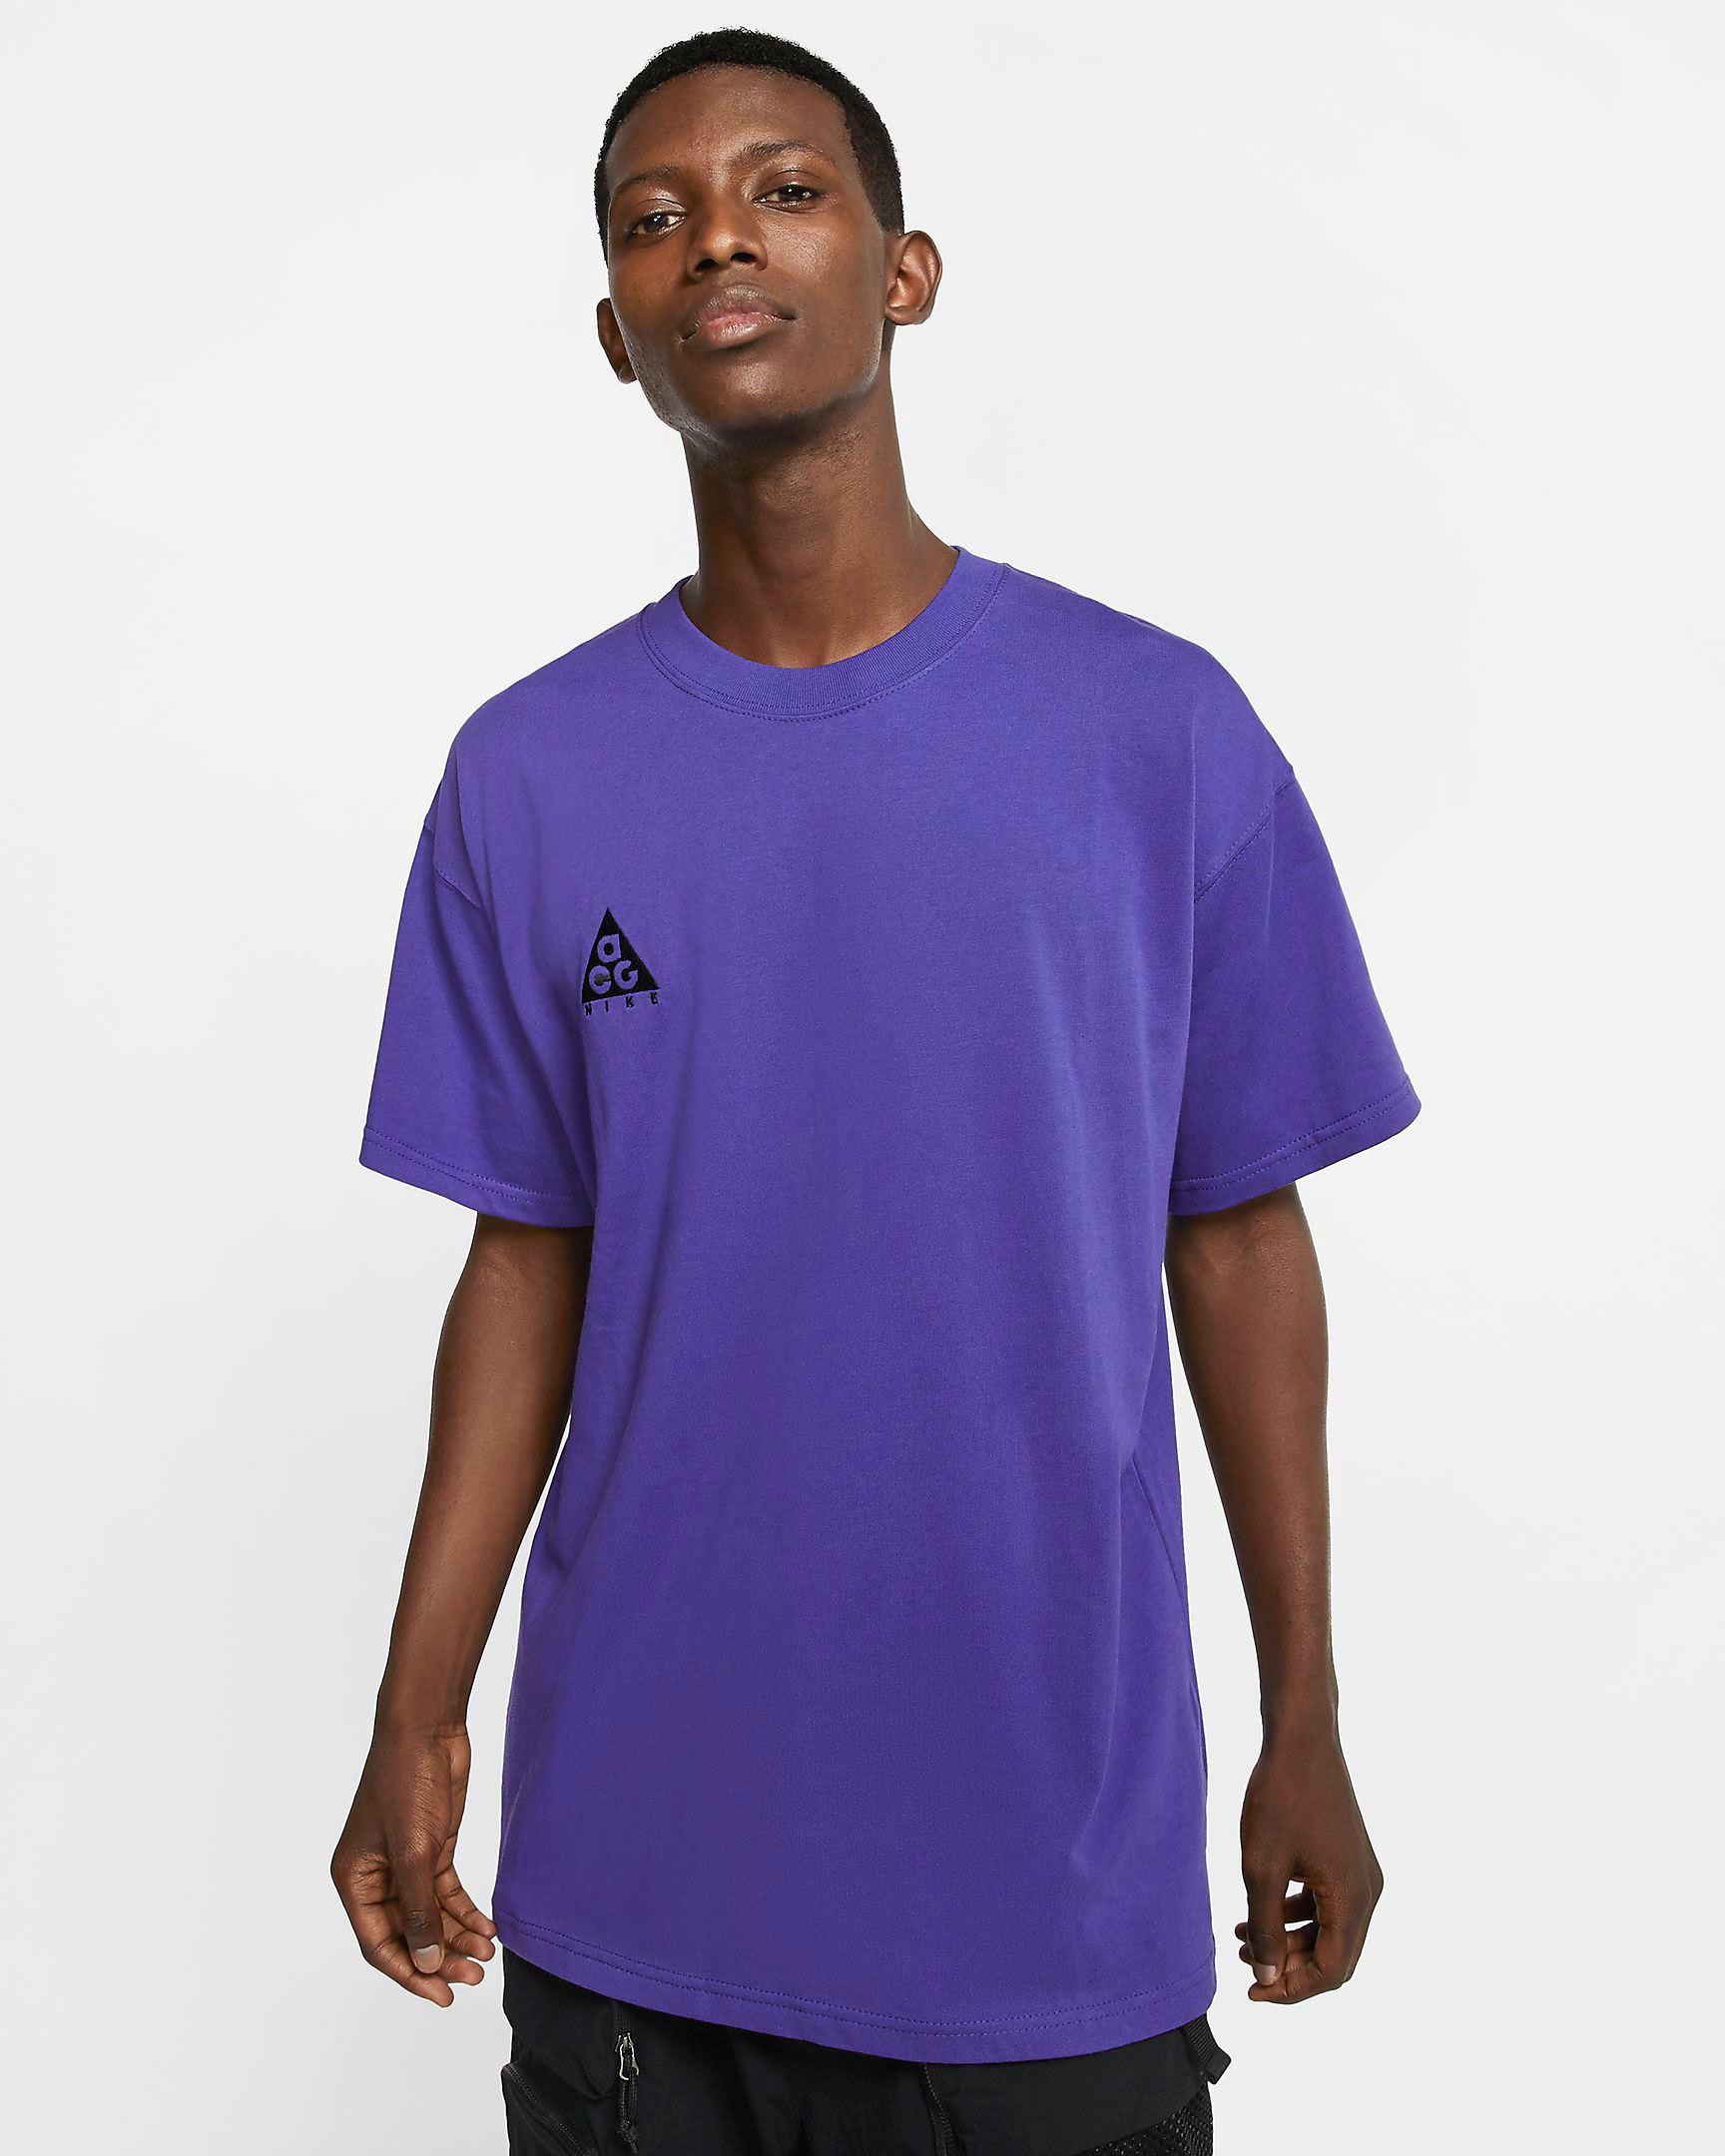 nike-acg-shirt-purple